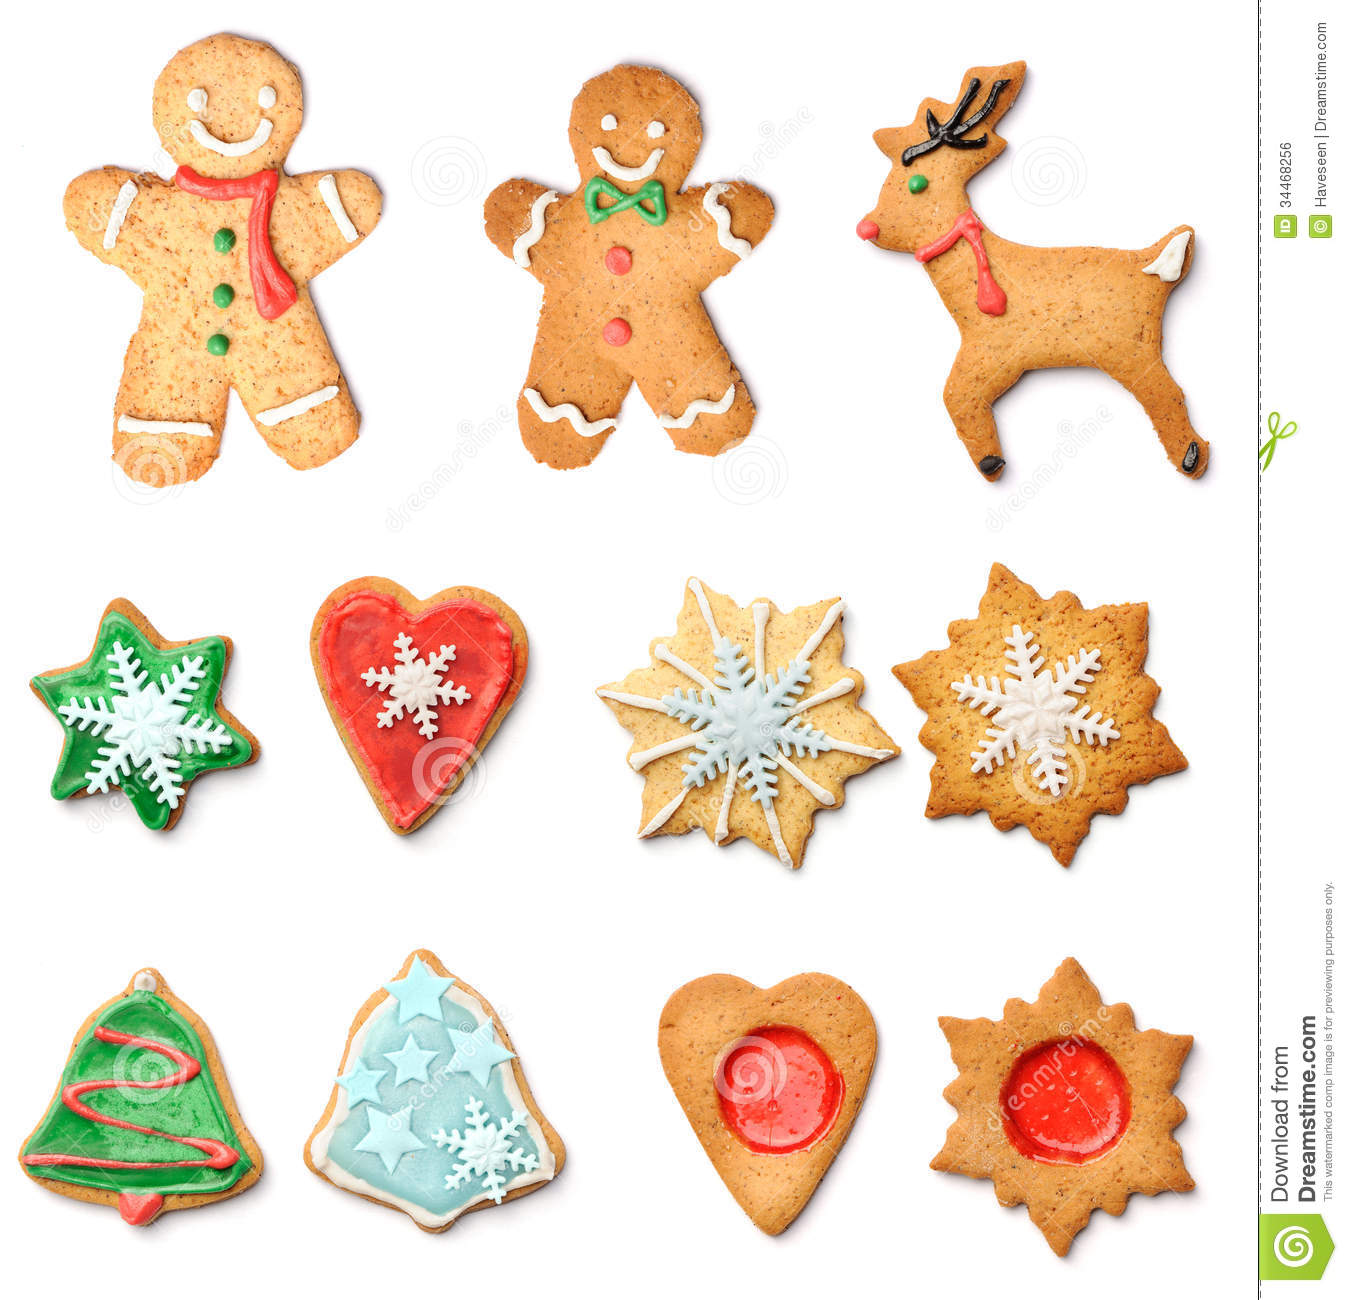 Christmas Gingerbread Cookies Collection Set Stock Photo Image Of